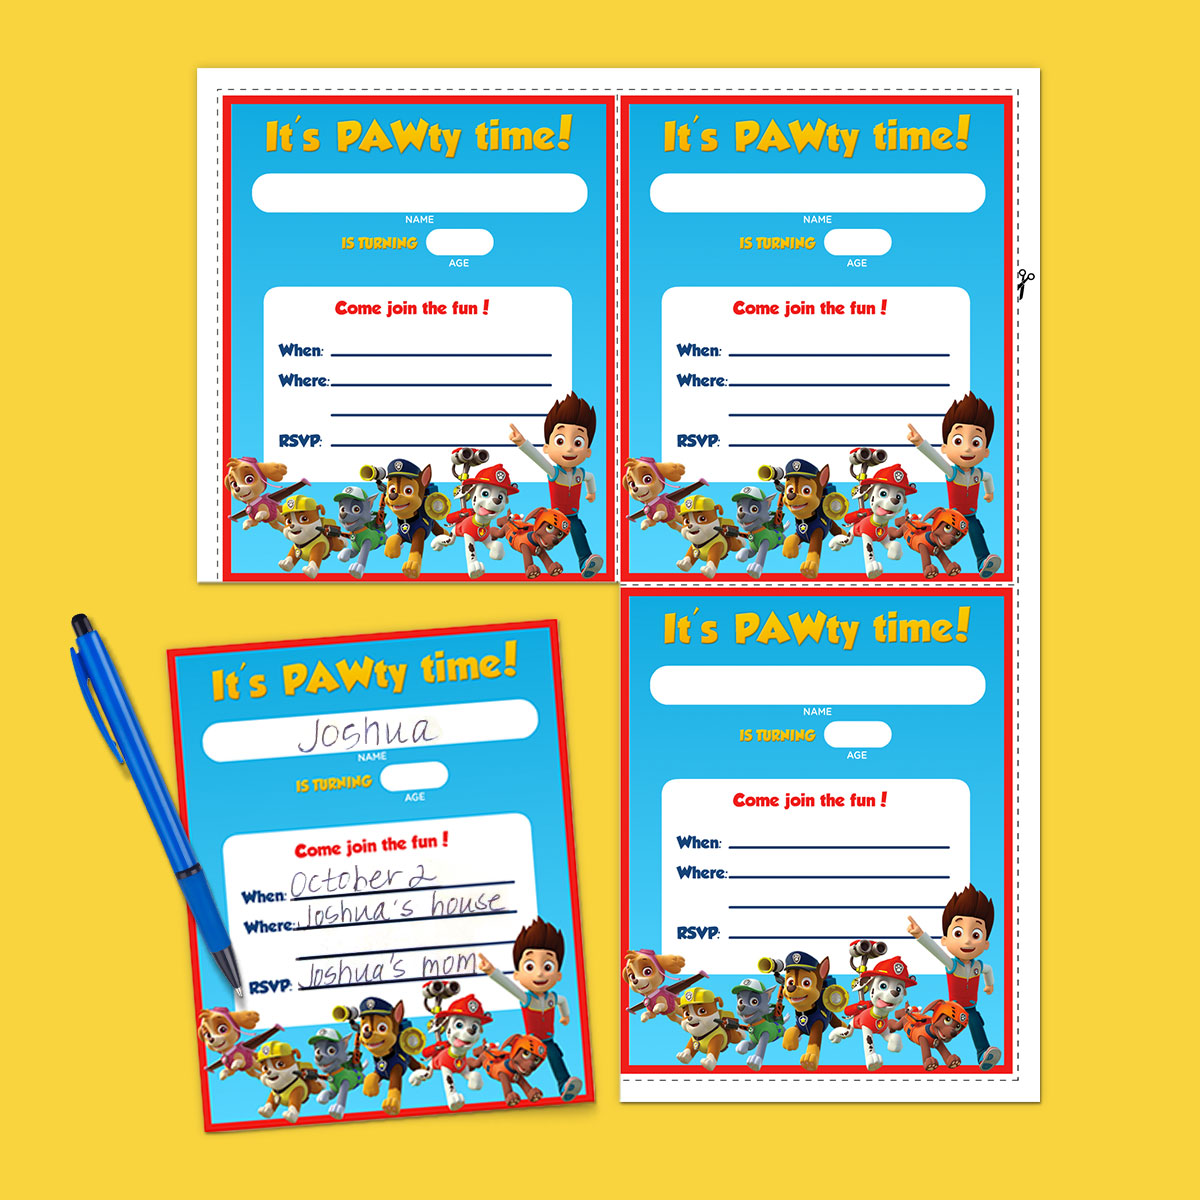 photo regarding Printable Paw Patrol Invitations referred to as PAW Patrol Birthday Occasion Invites Nickelodeon Mothers and fathers